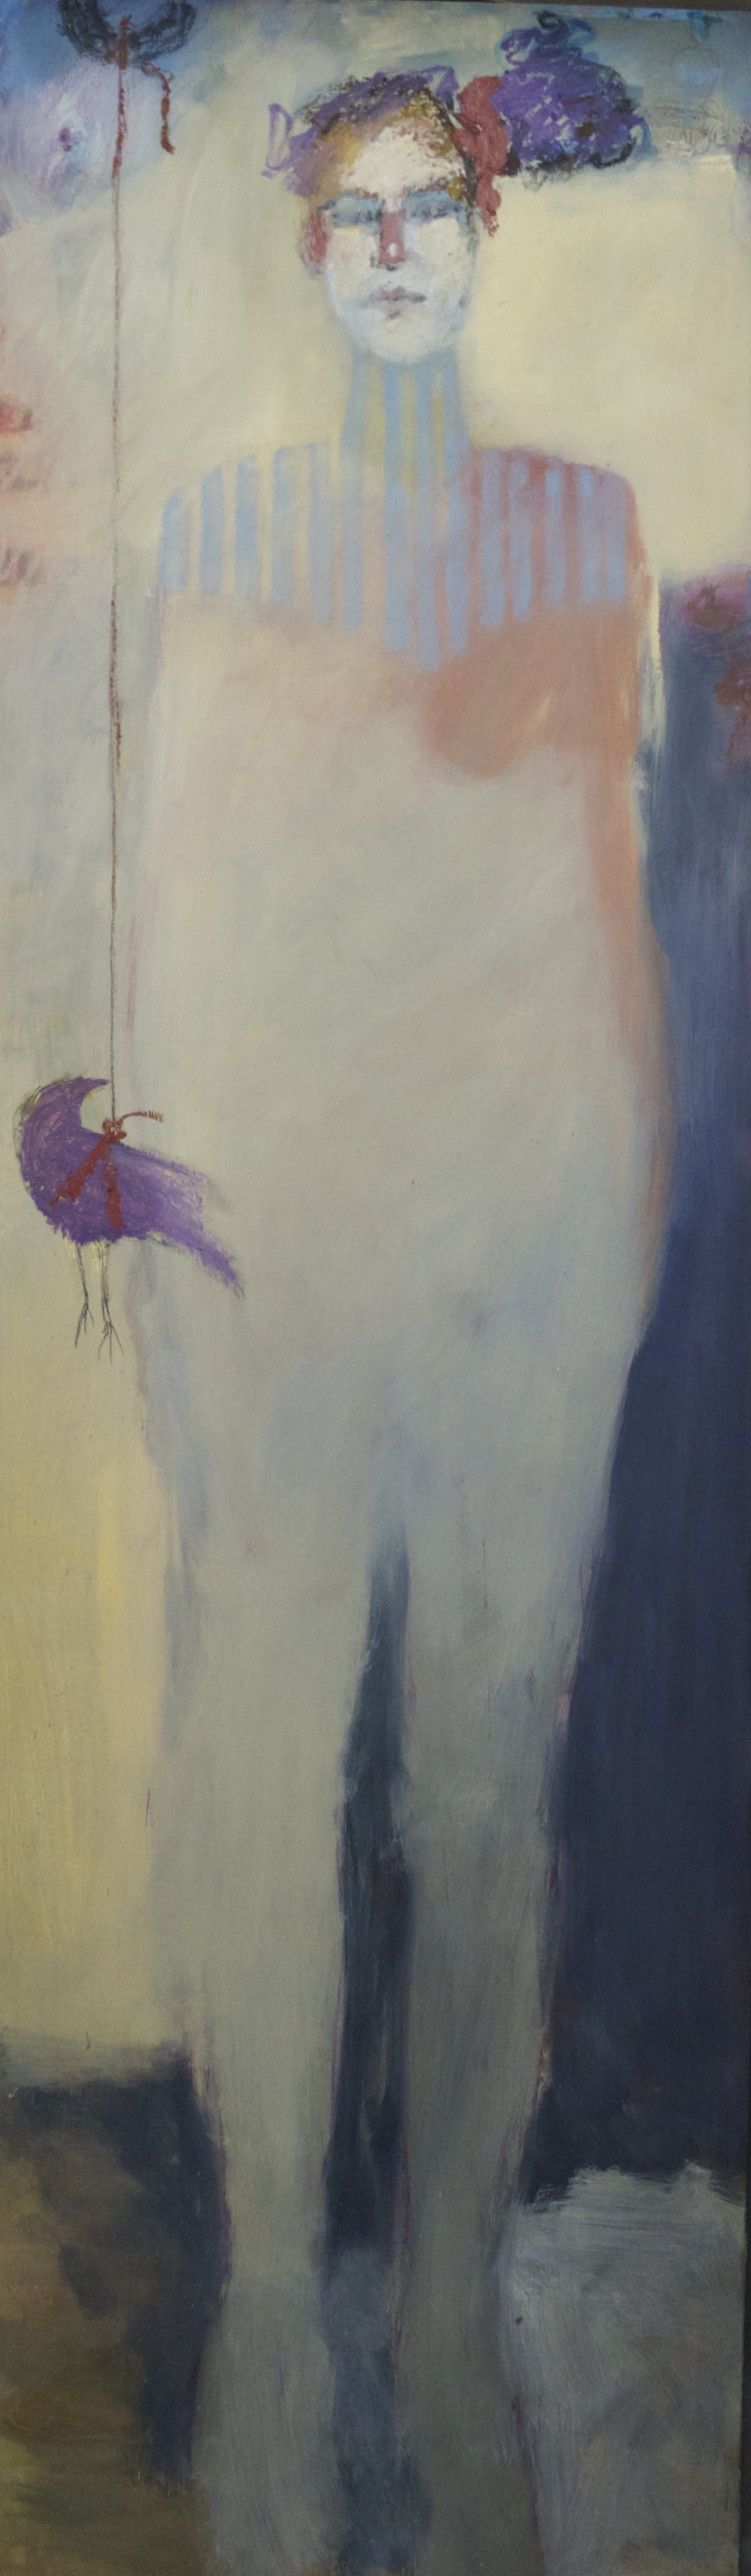 Crossing the high wire….. - Harriet Marshall Goode